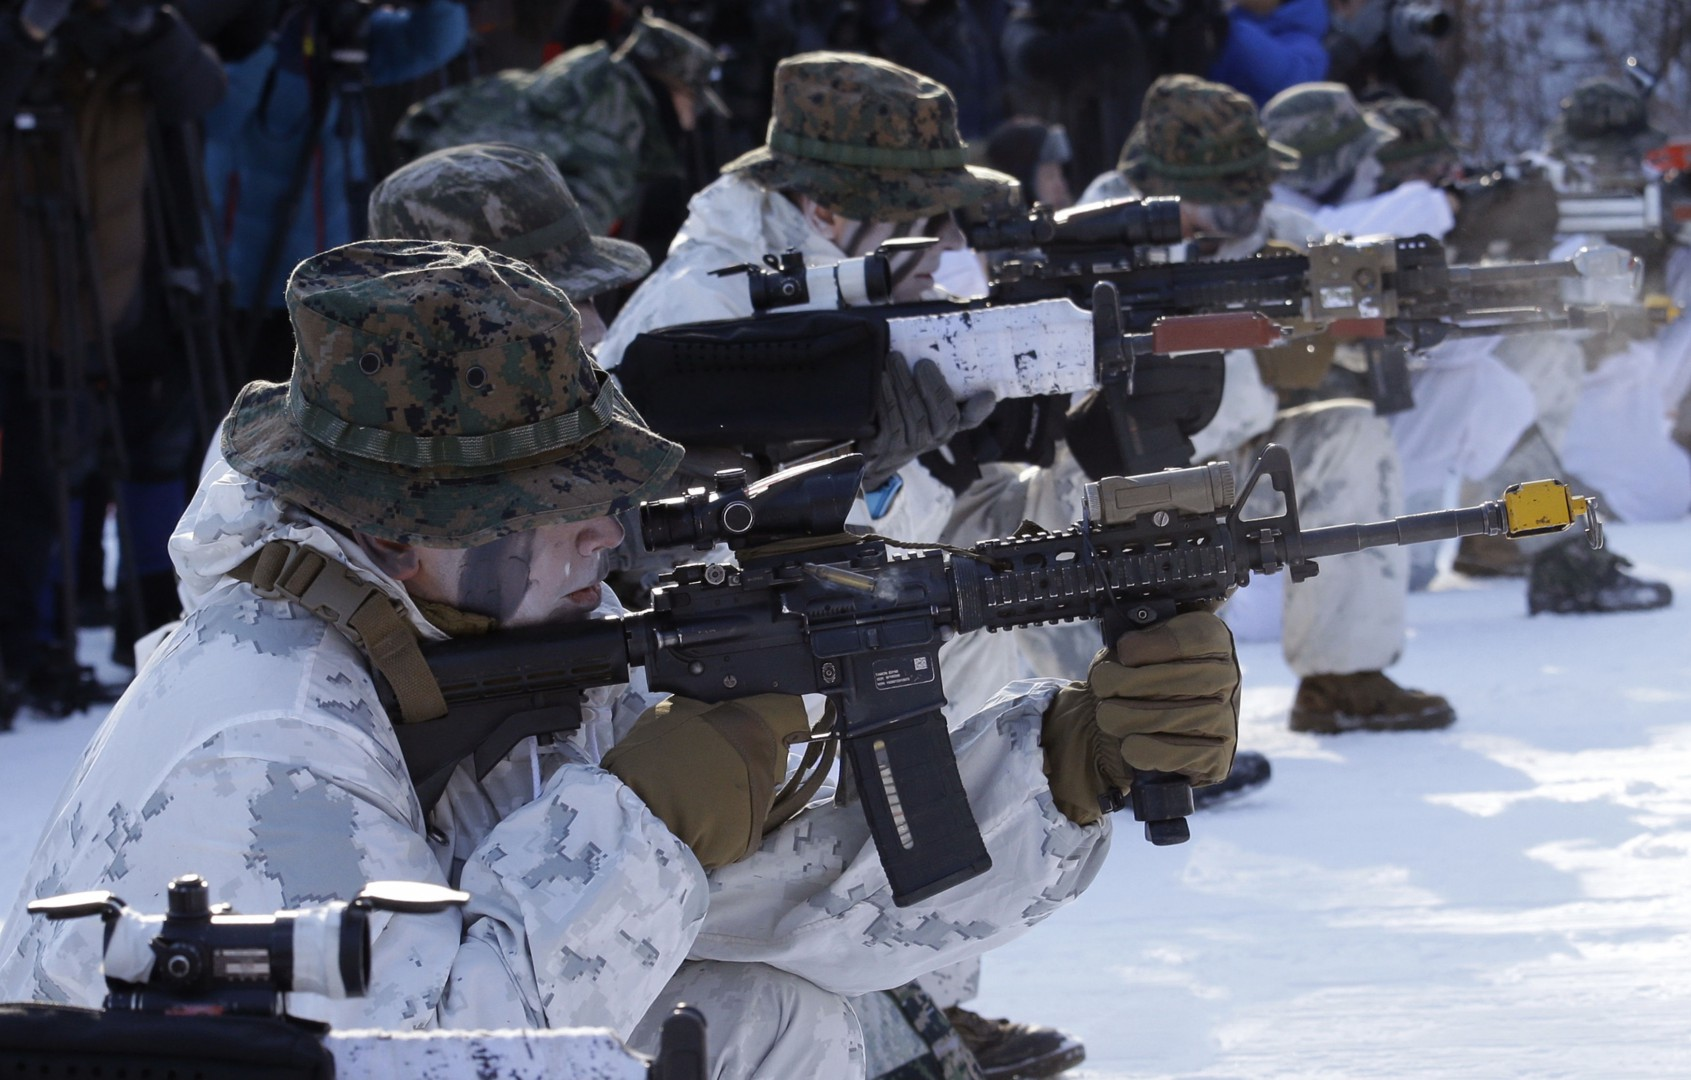 South Korean and U.S. Marines from III Marine Expeditionary Force from Okinawa, Japan, fire their machine guns during their joint military winter exercise in Pyeongchang, South Korea, Tuesday, Dec. 19, 2017. More than 400 marines from the two countries participated in the Dec. 4-22 joint winter exercise in South Korea. (AP Photo/Ahn Young-joon)